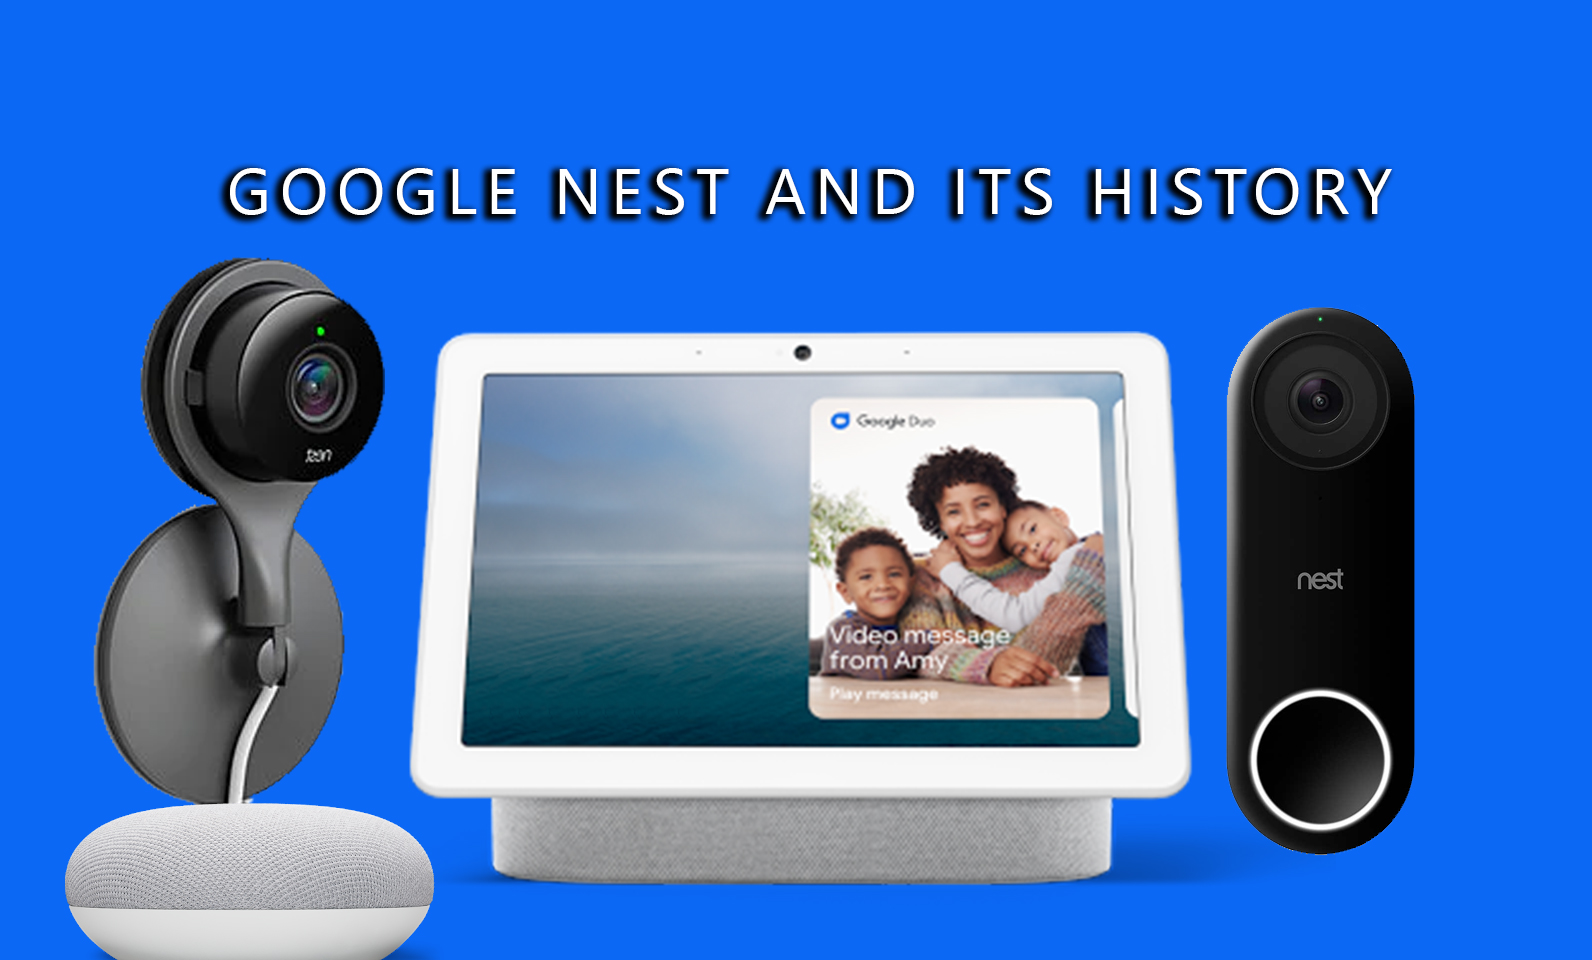 What is Google Nest